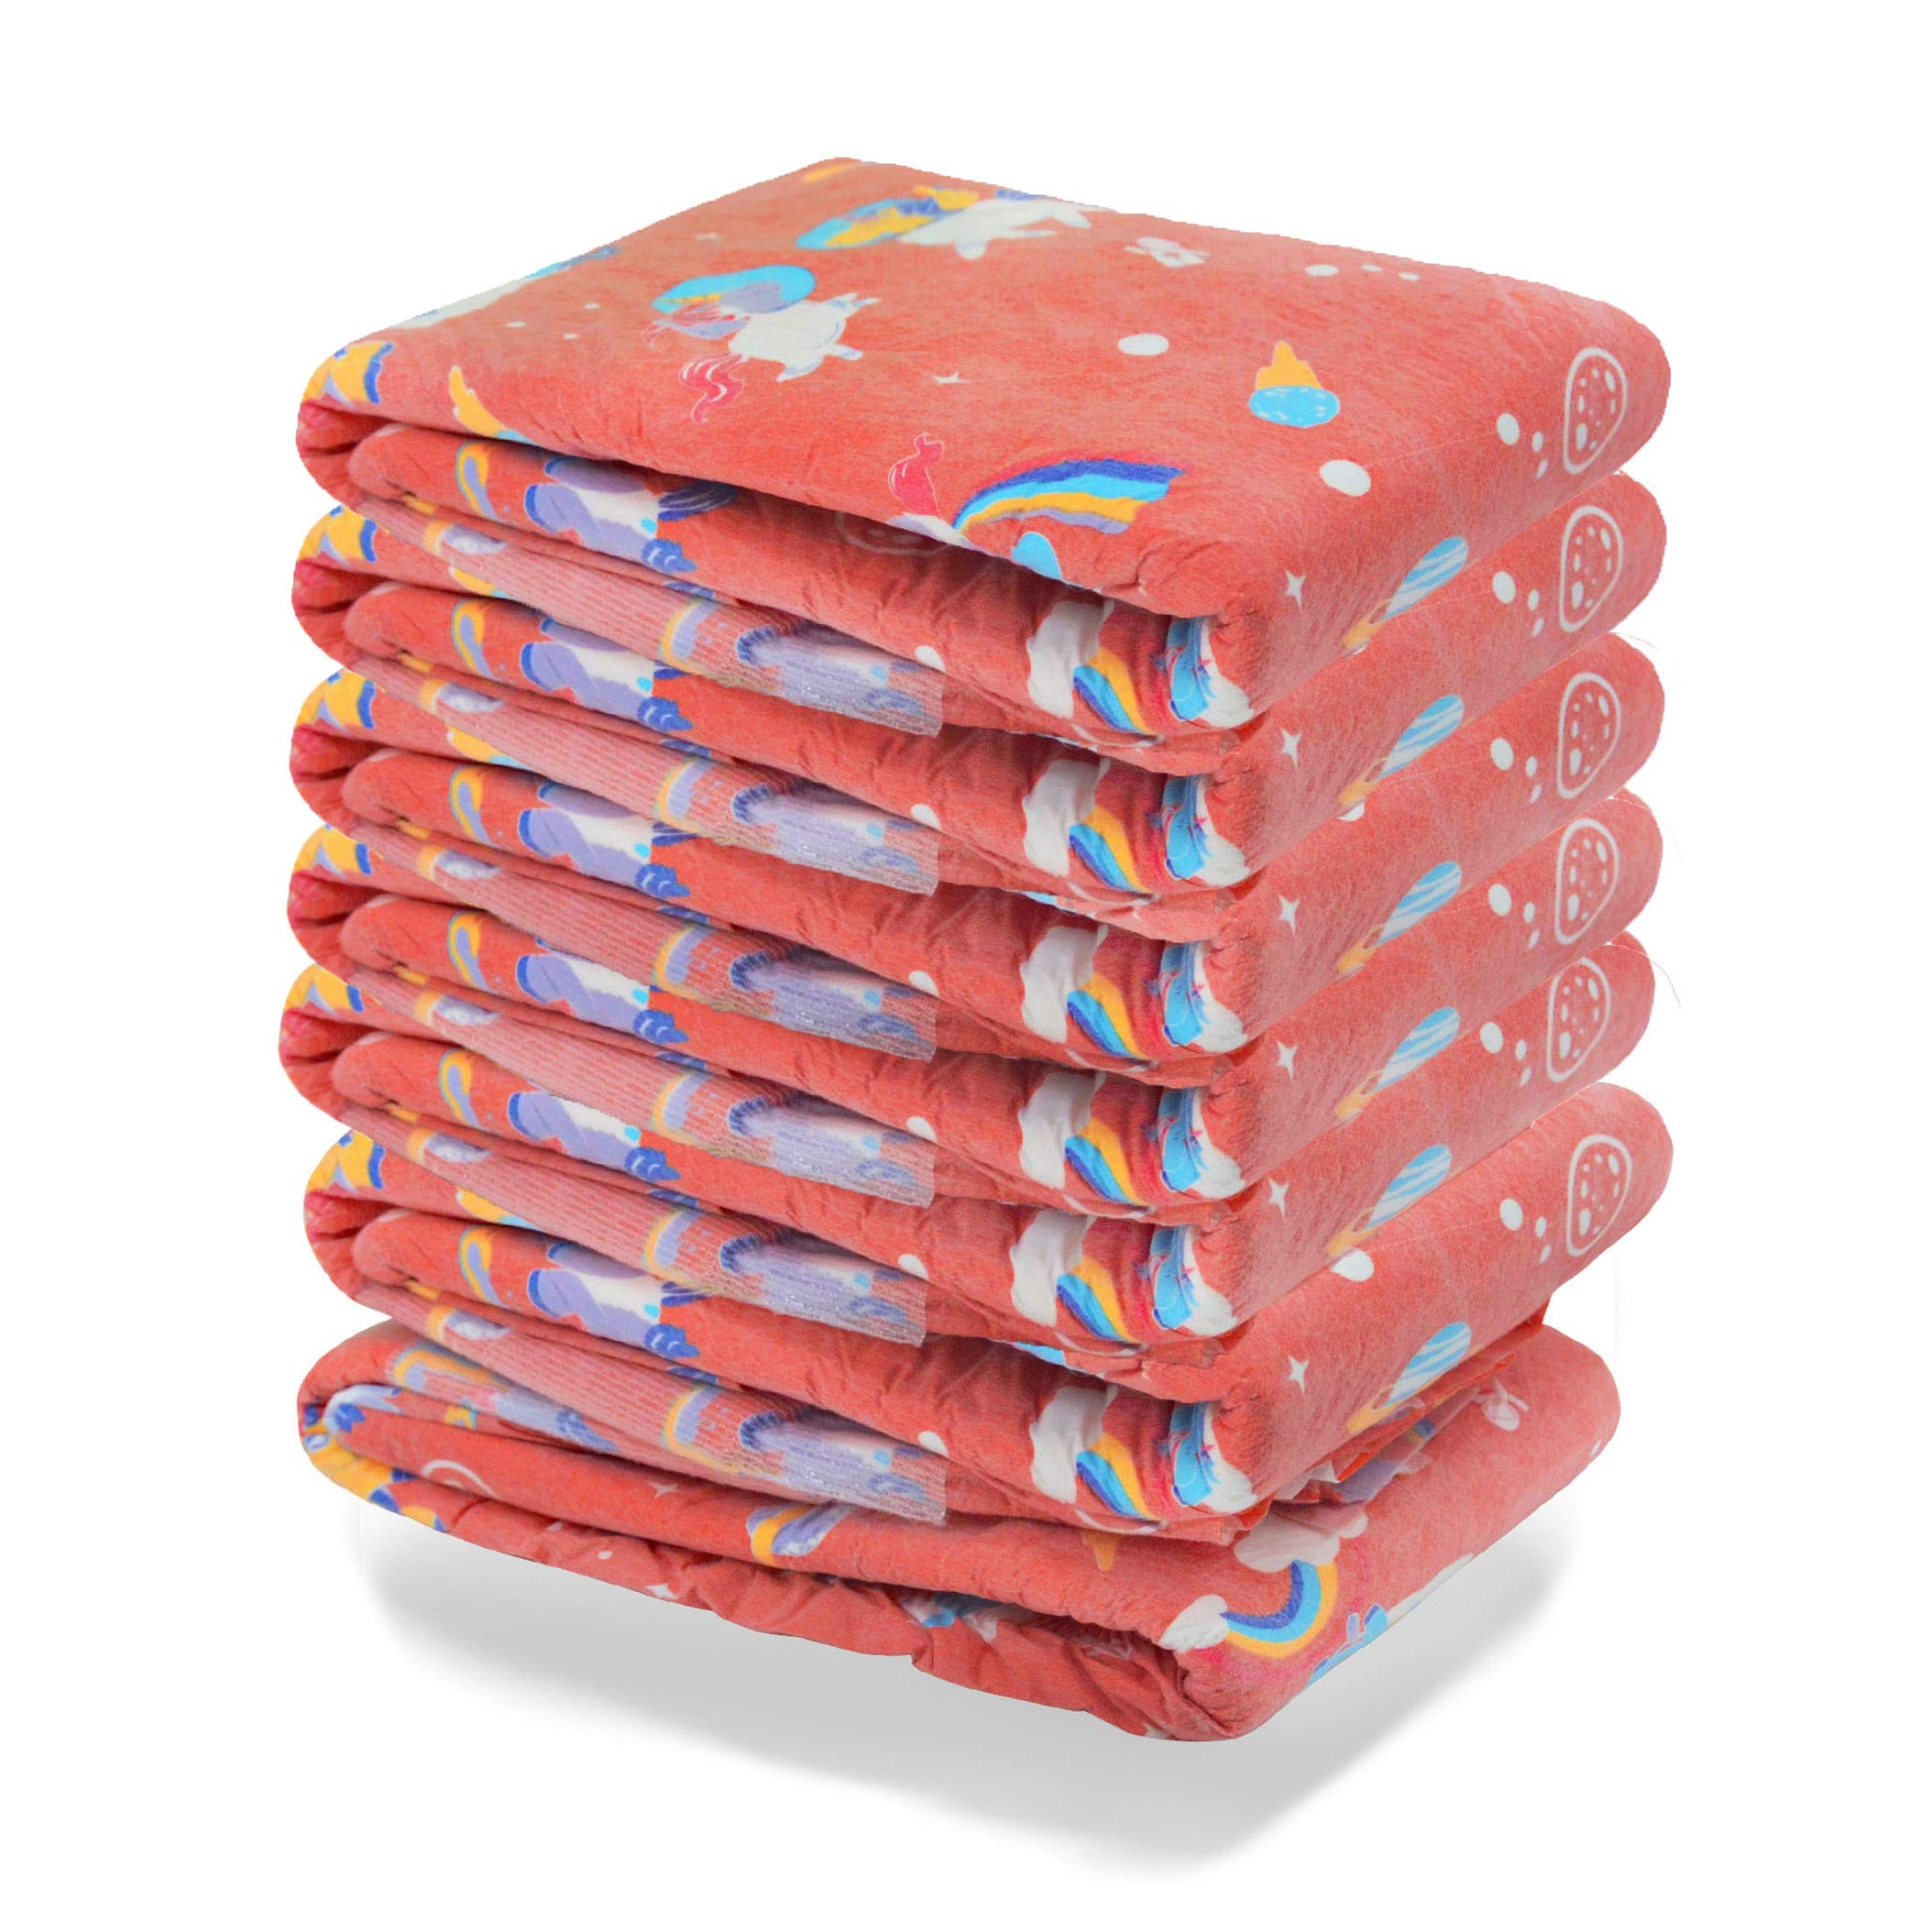 TEN@NIGHT Adult Baby Brief Diapers ABDL One time Incontinence Diaper 7 Pieces (Orange)